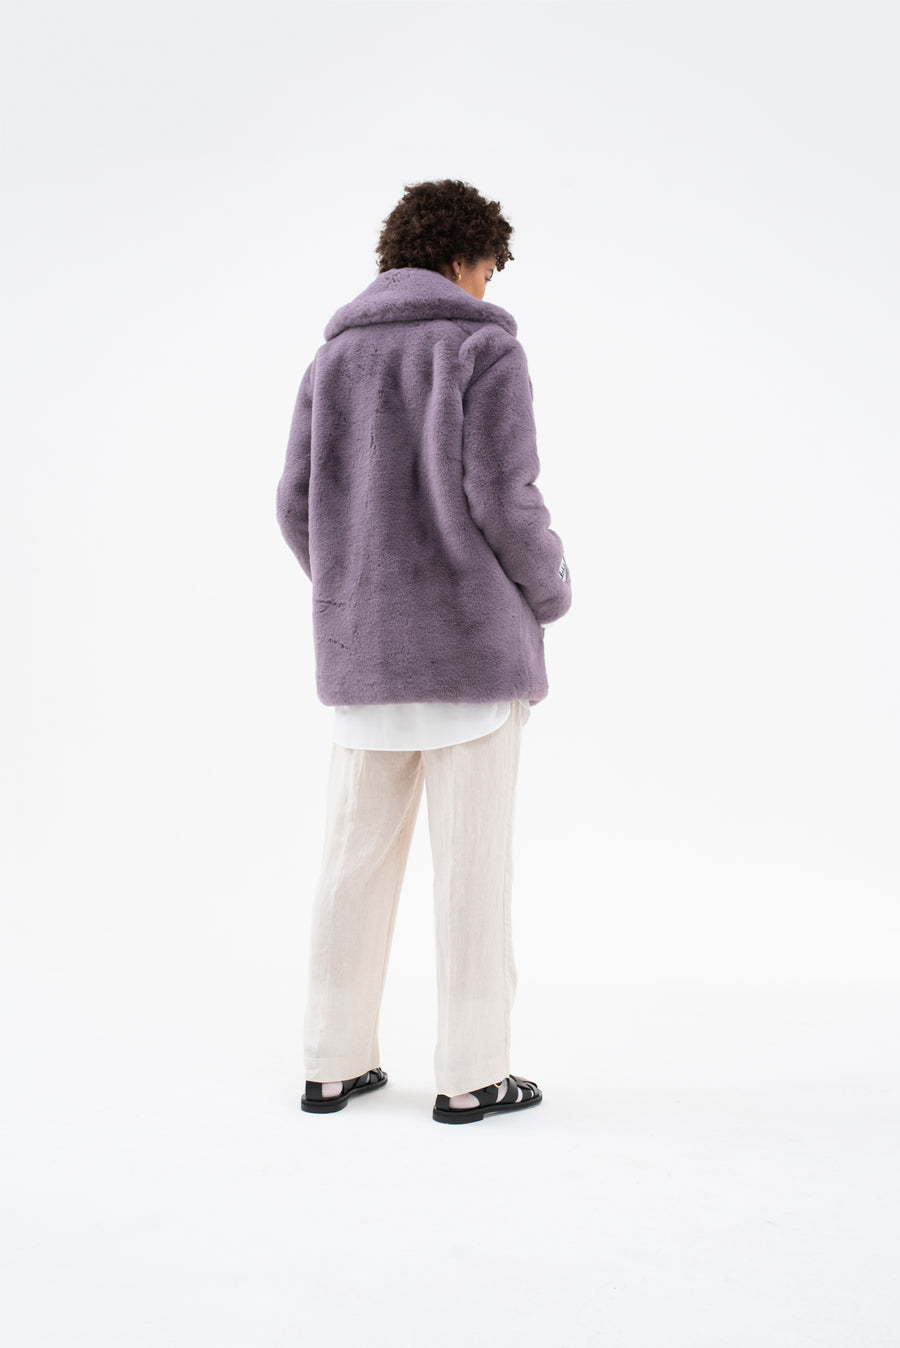 heather faux fur jacket 'wear & care' lavender